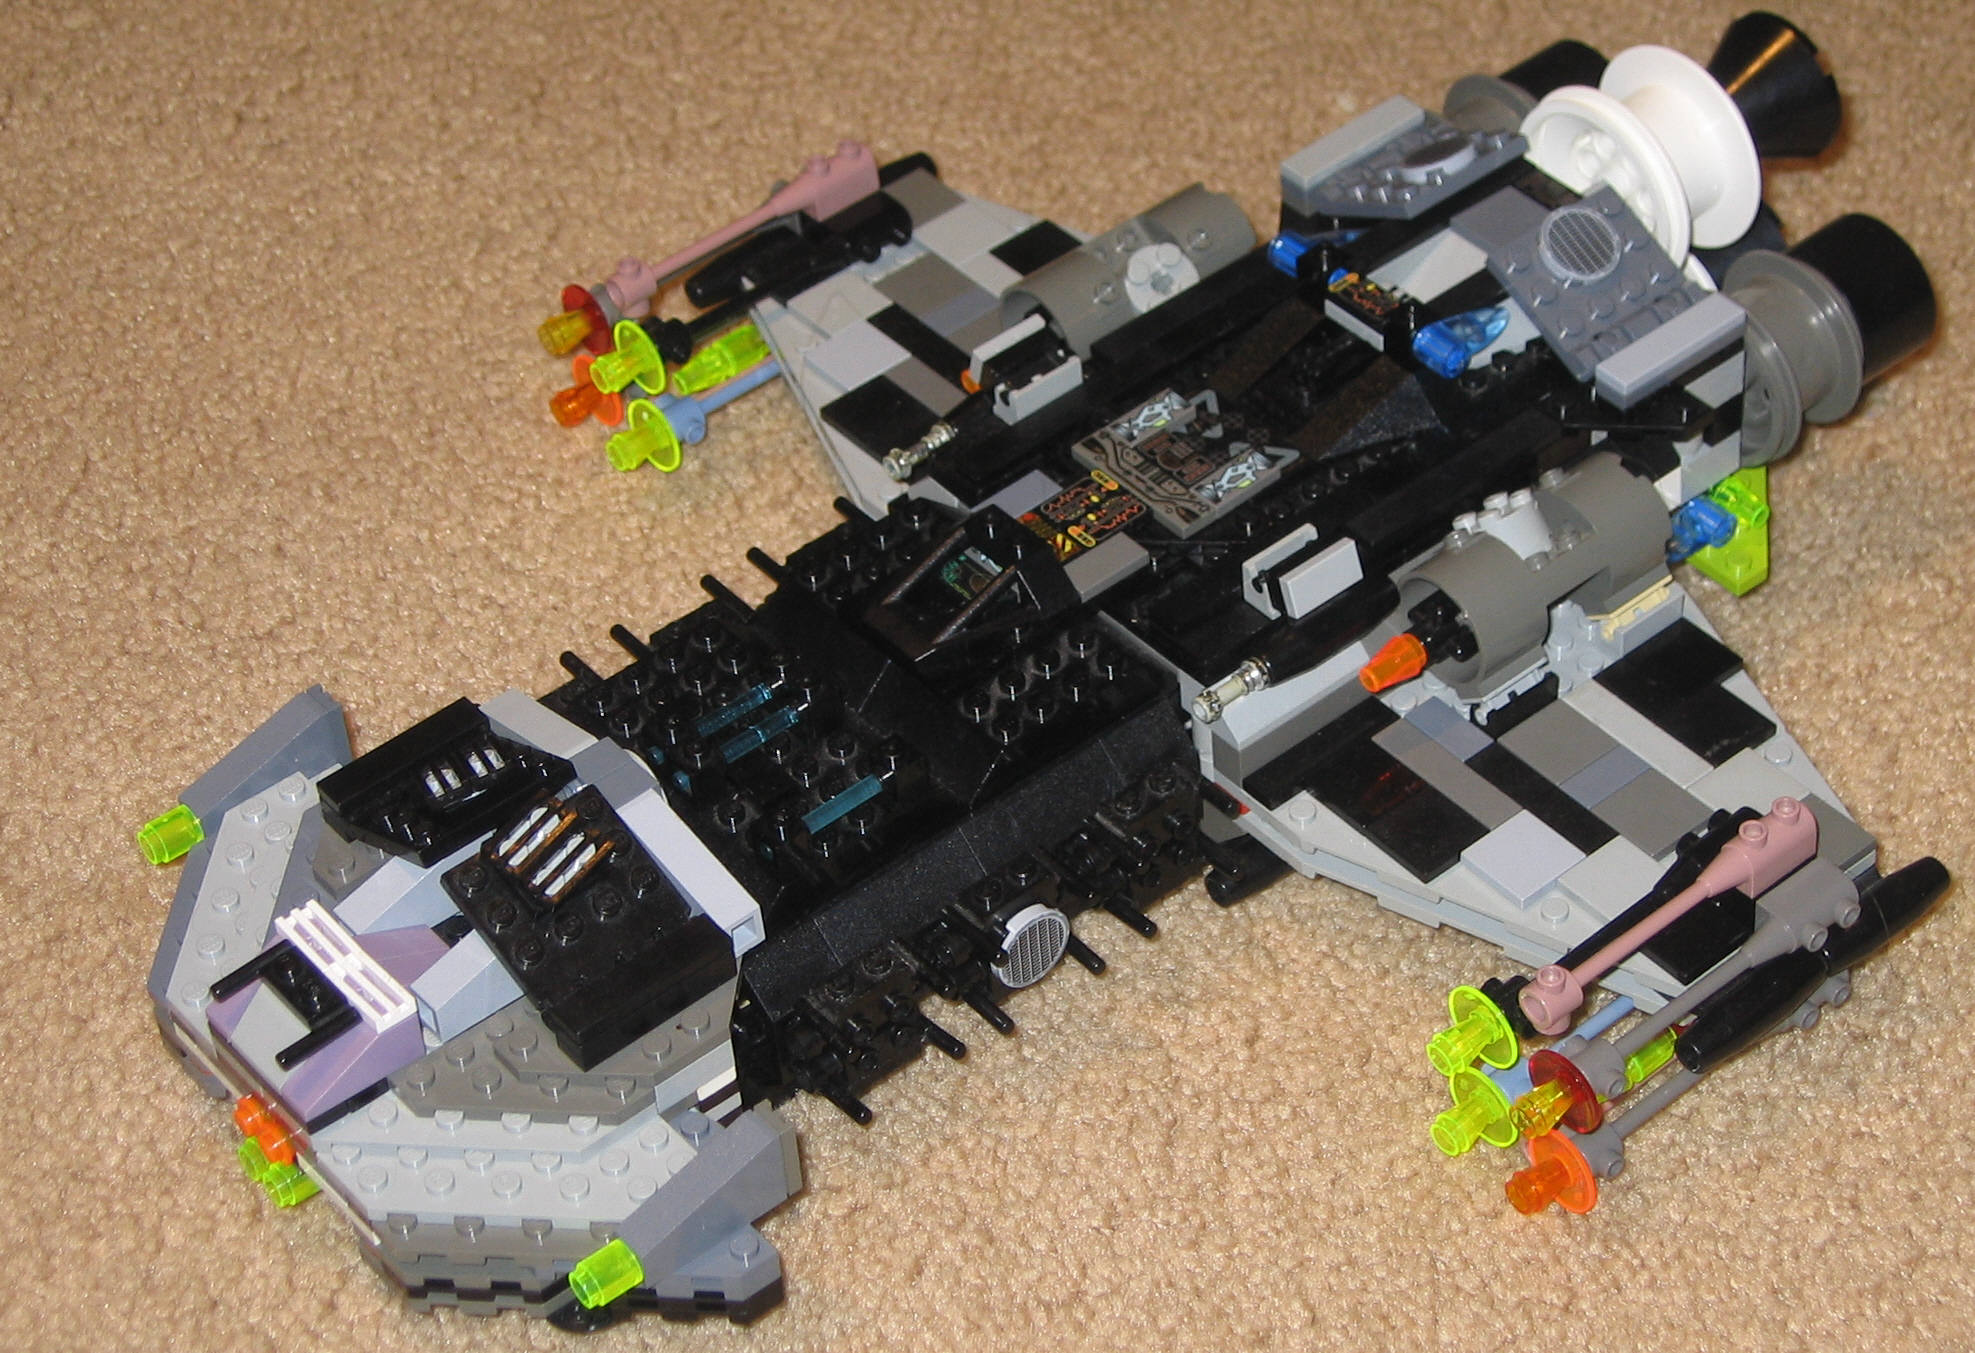 Starcraft Battlecruiser-Legos by Ajmooch